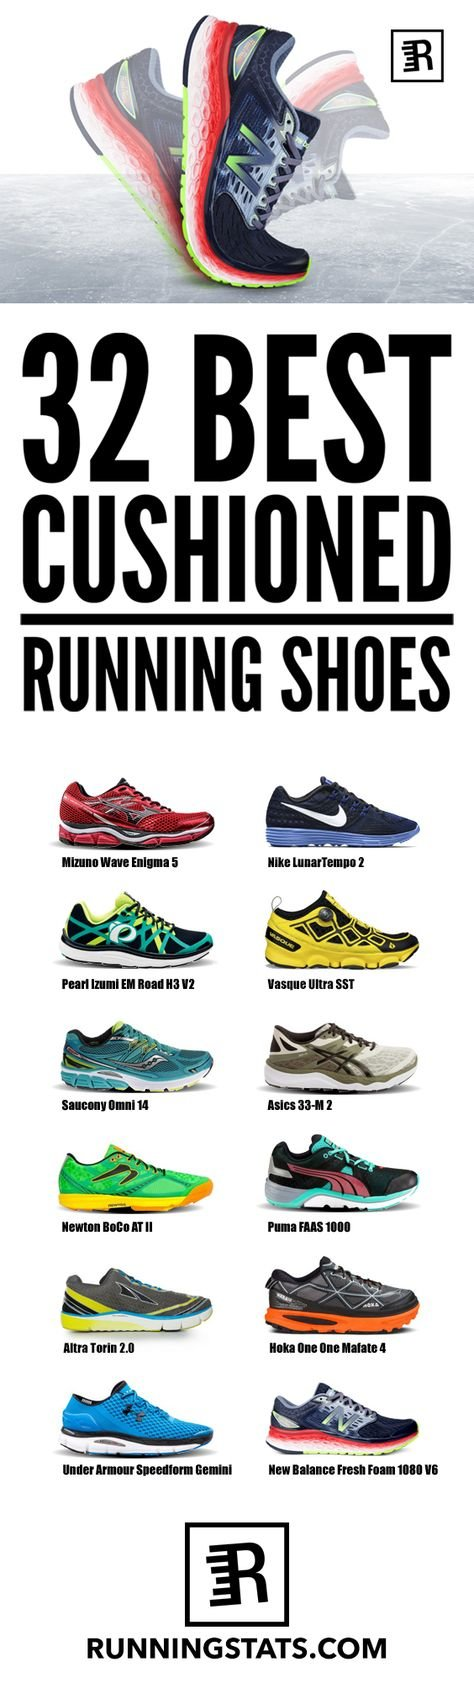 17a55f86a 32 Best Cushioned Running Shoes (2016) for the Modern Day Runner